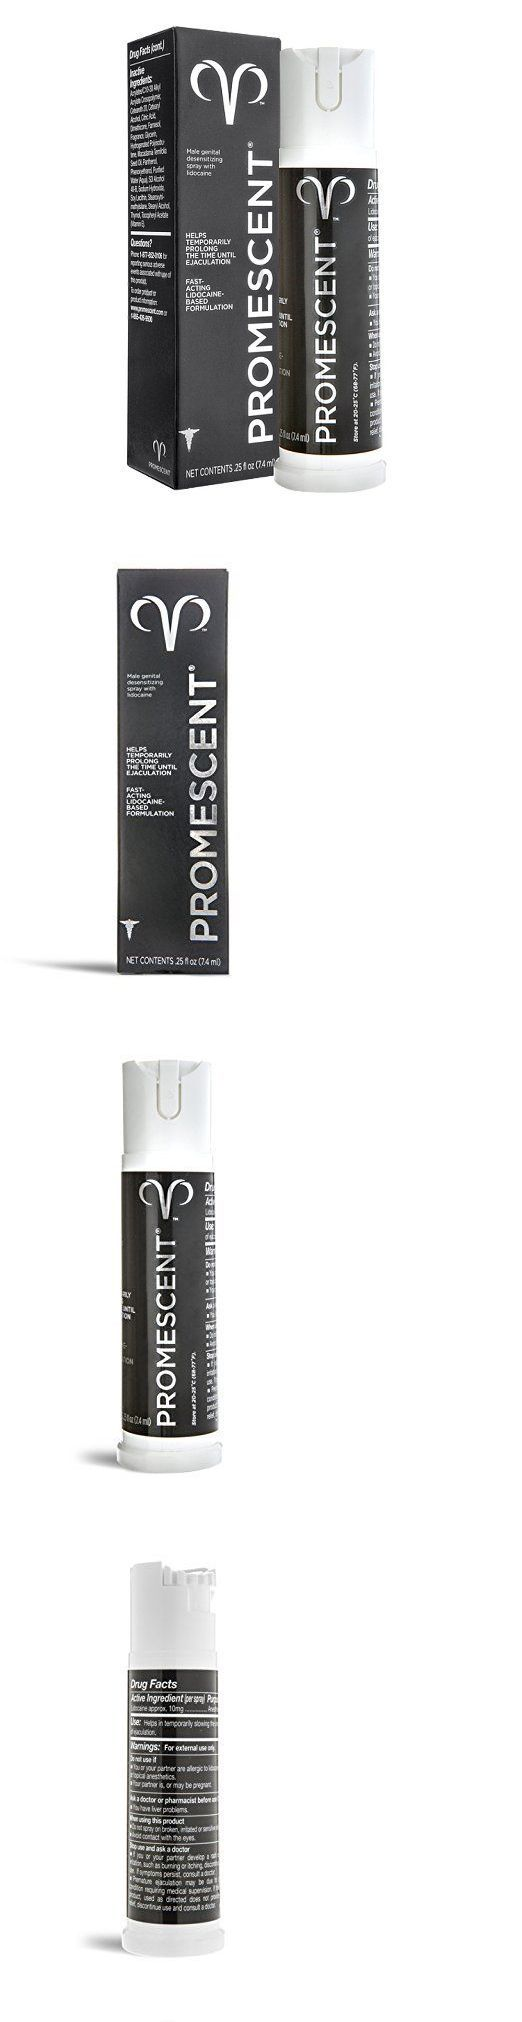 Sexual Remedies and Supplements: Promescent Male Premature Ejaculation Prolong Spray Standard (7.4 Ml) Exp 01/17 BUY IT NOW ONLY: $44.95